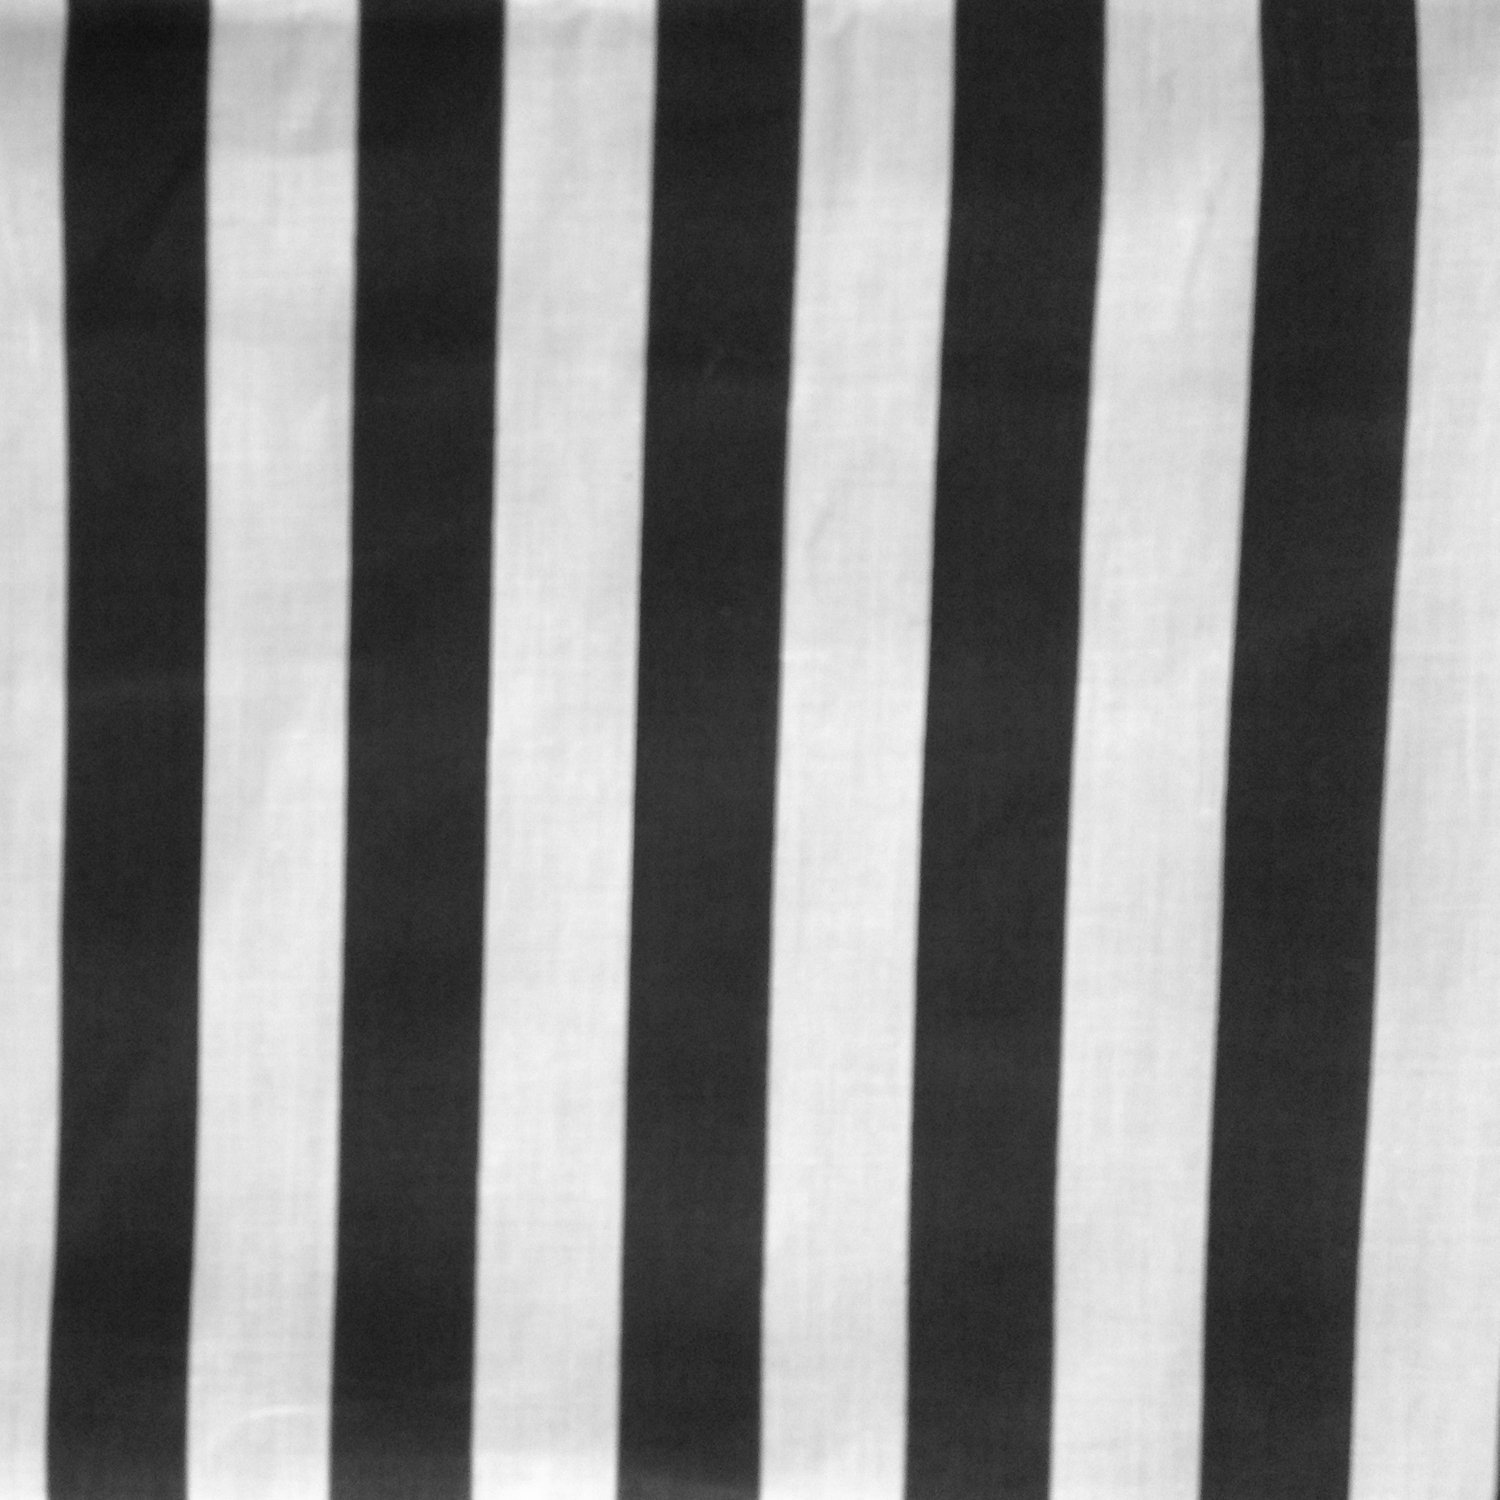 1-Inch Stripes Black White Poly Cotton 58 Inch Fabric By the Yard (F.E.) by The Fabric Exchange   B00GWTSIJI